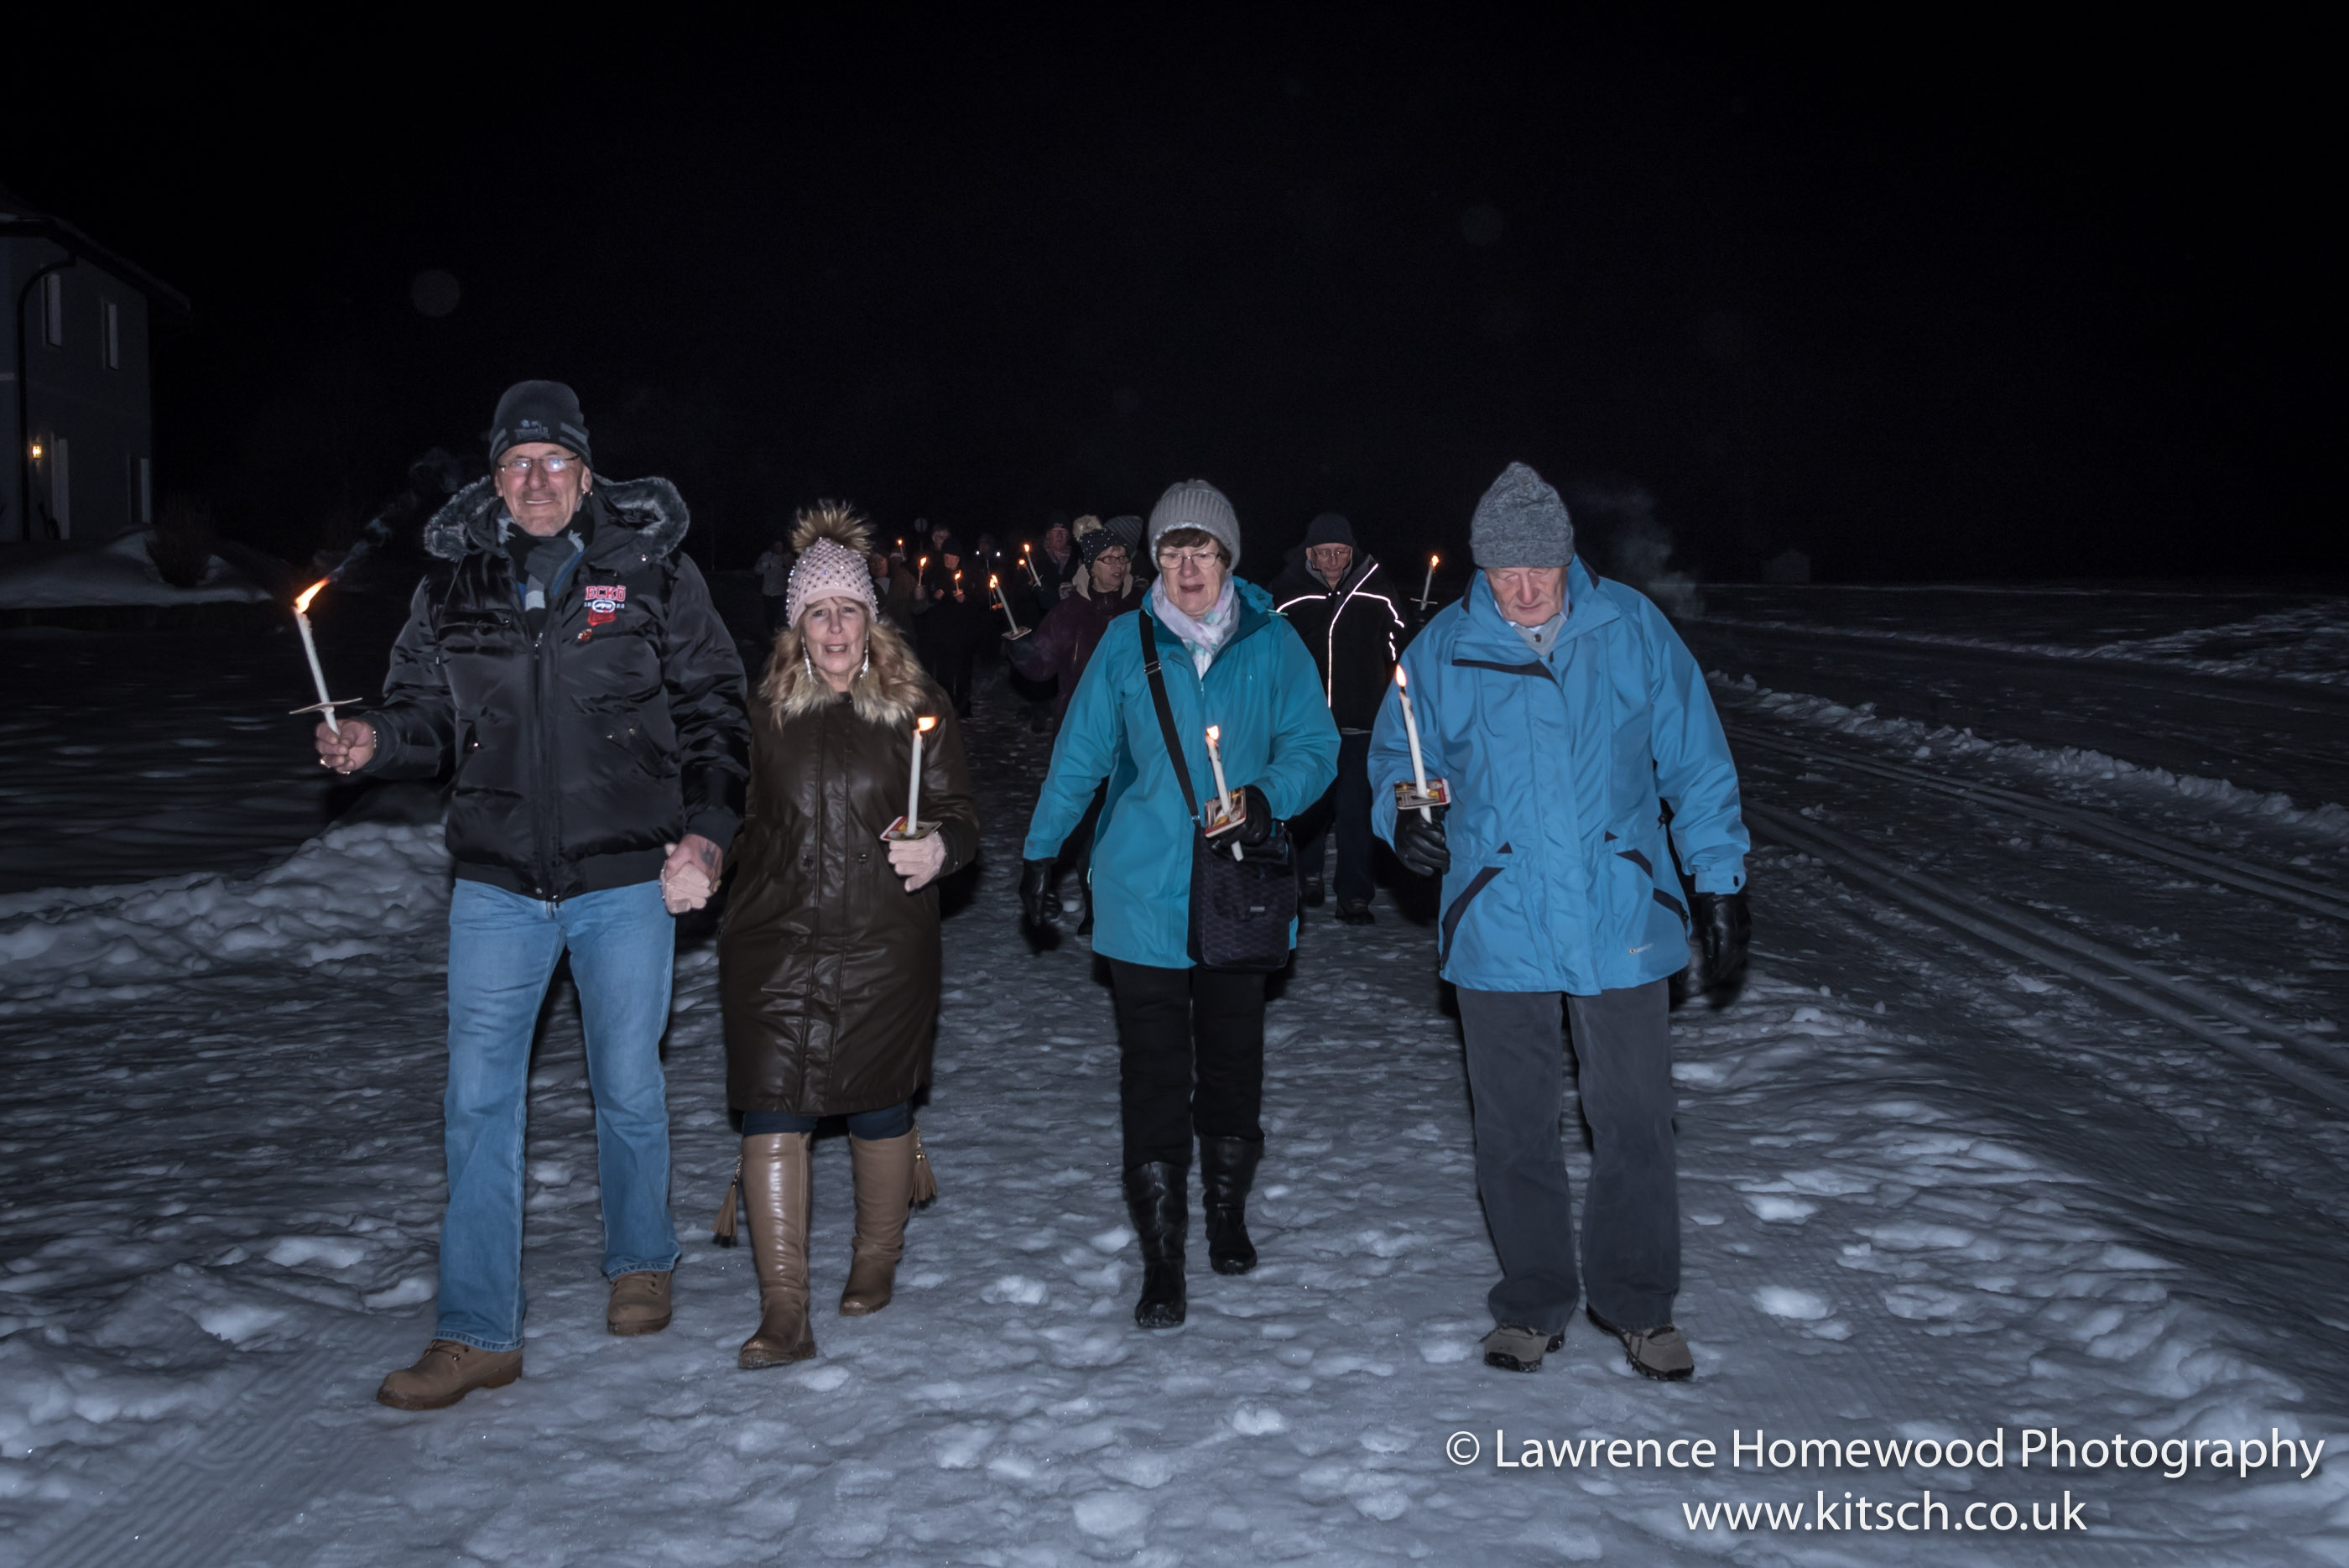 Candle Walk - The Group3